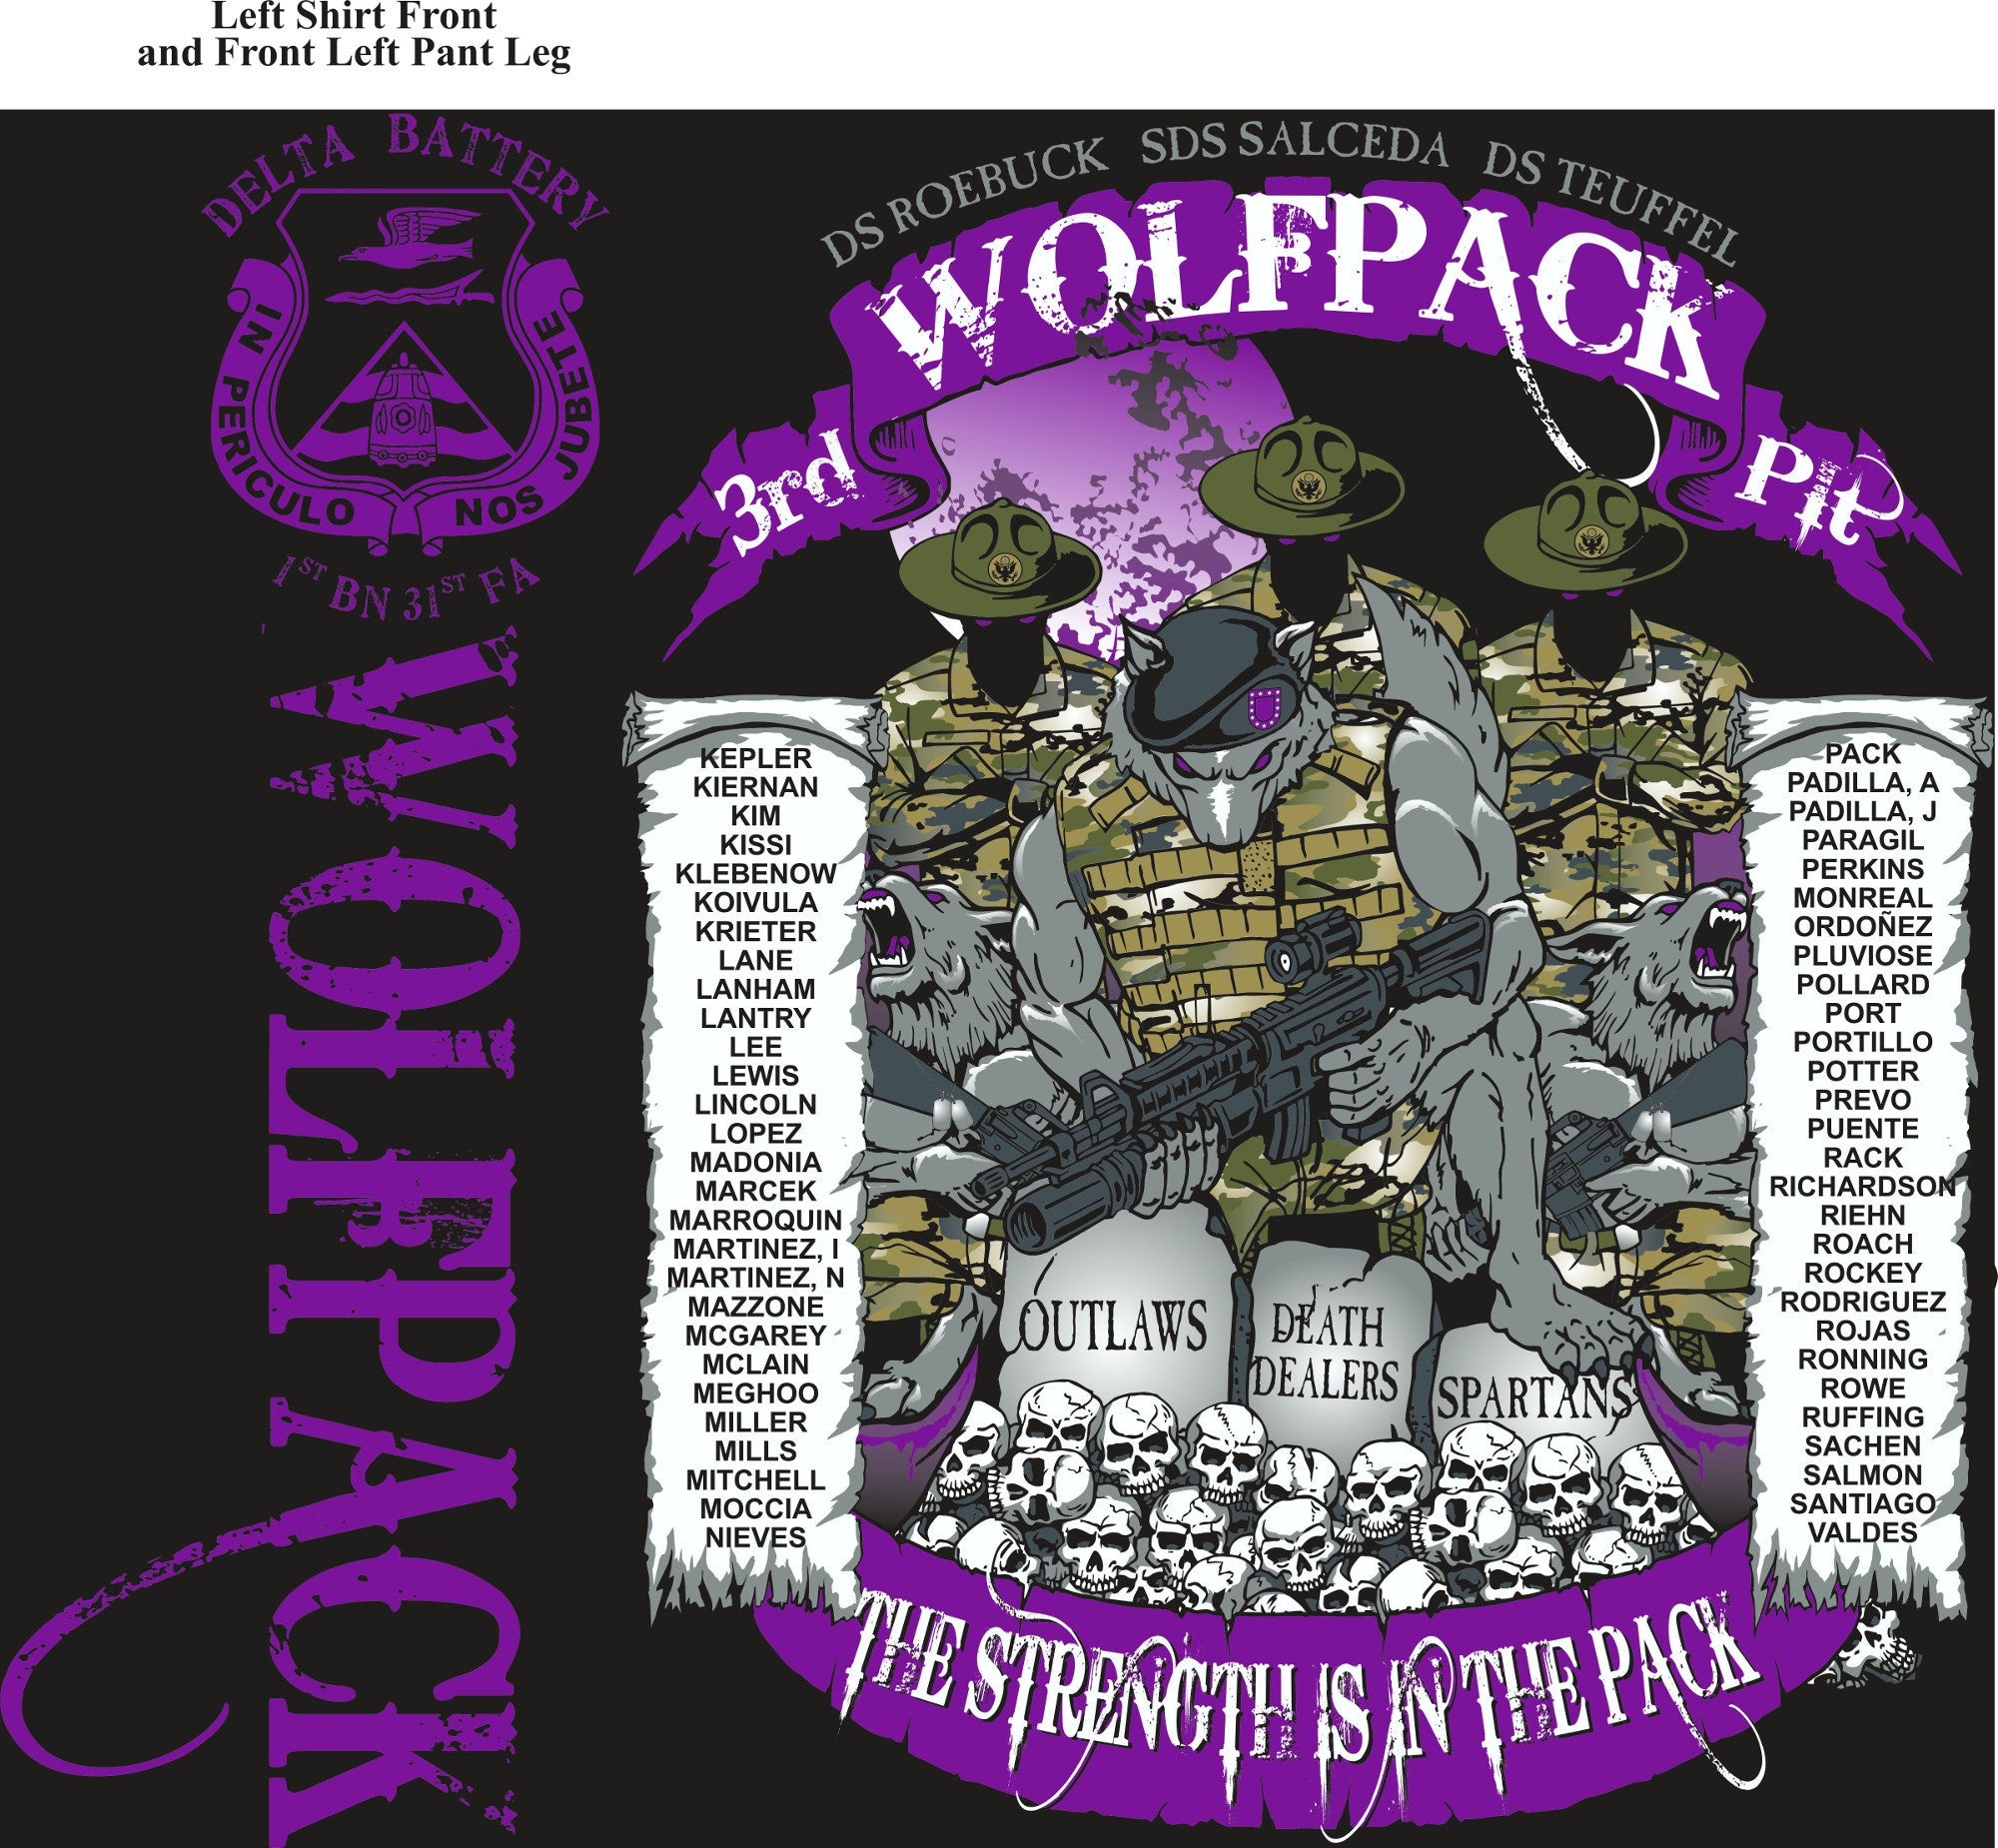 PLATOON SHIRTS (2nd generation print) DELTA 1st 31st WOLFPACK SEPT 2016